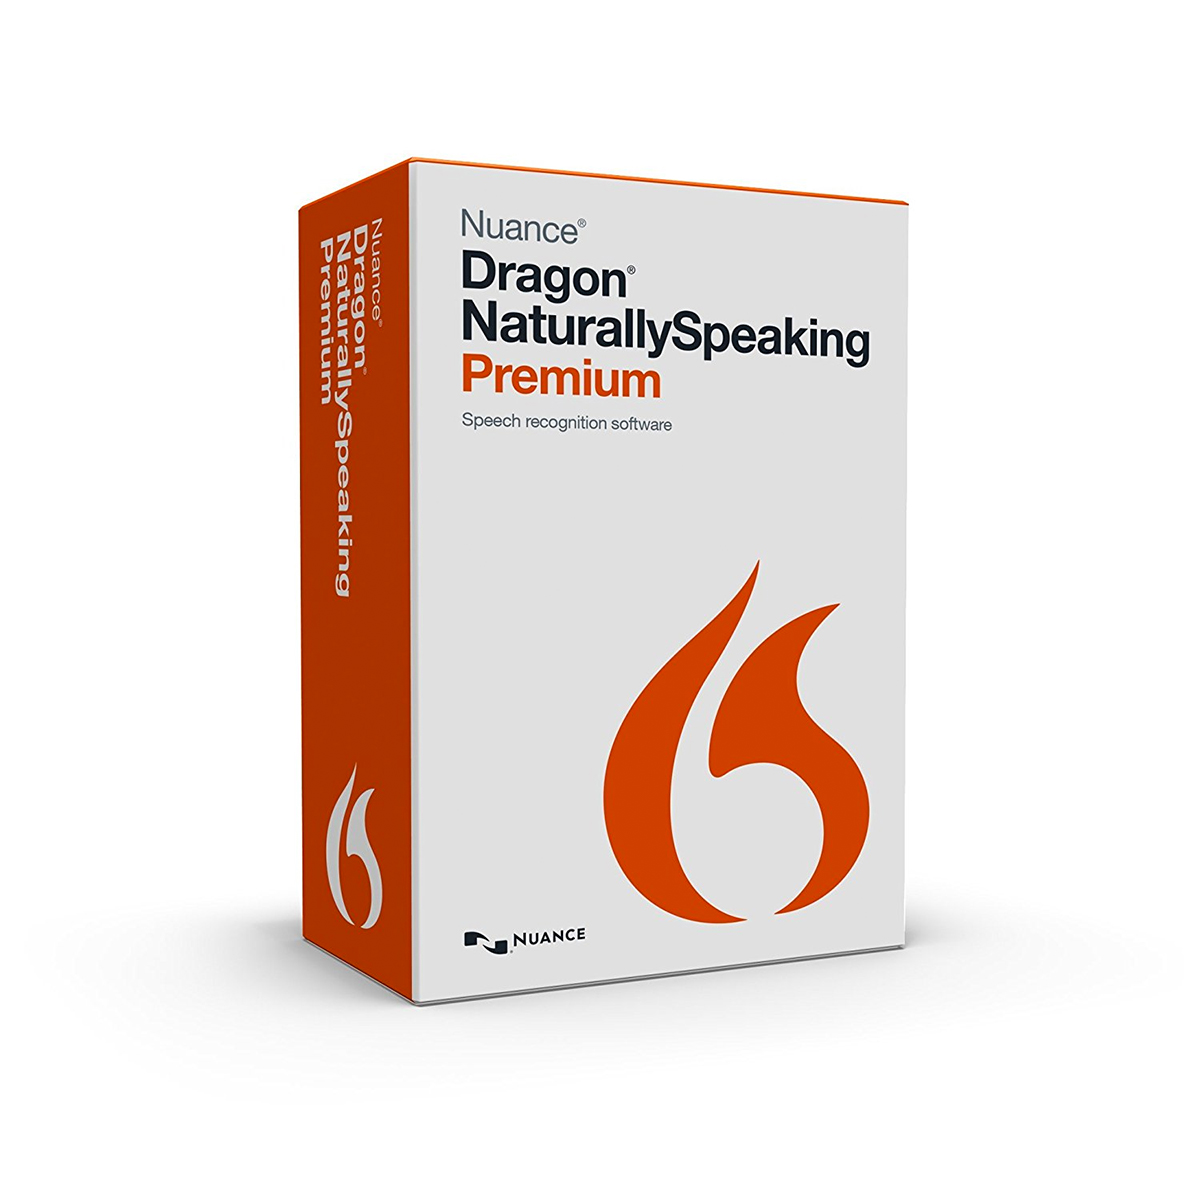 Nuance Dragon NaturallySpeaking Premium 13.0 International English Retail